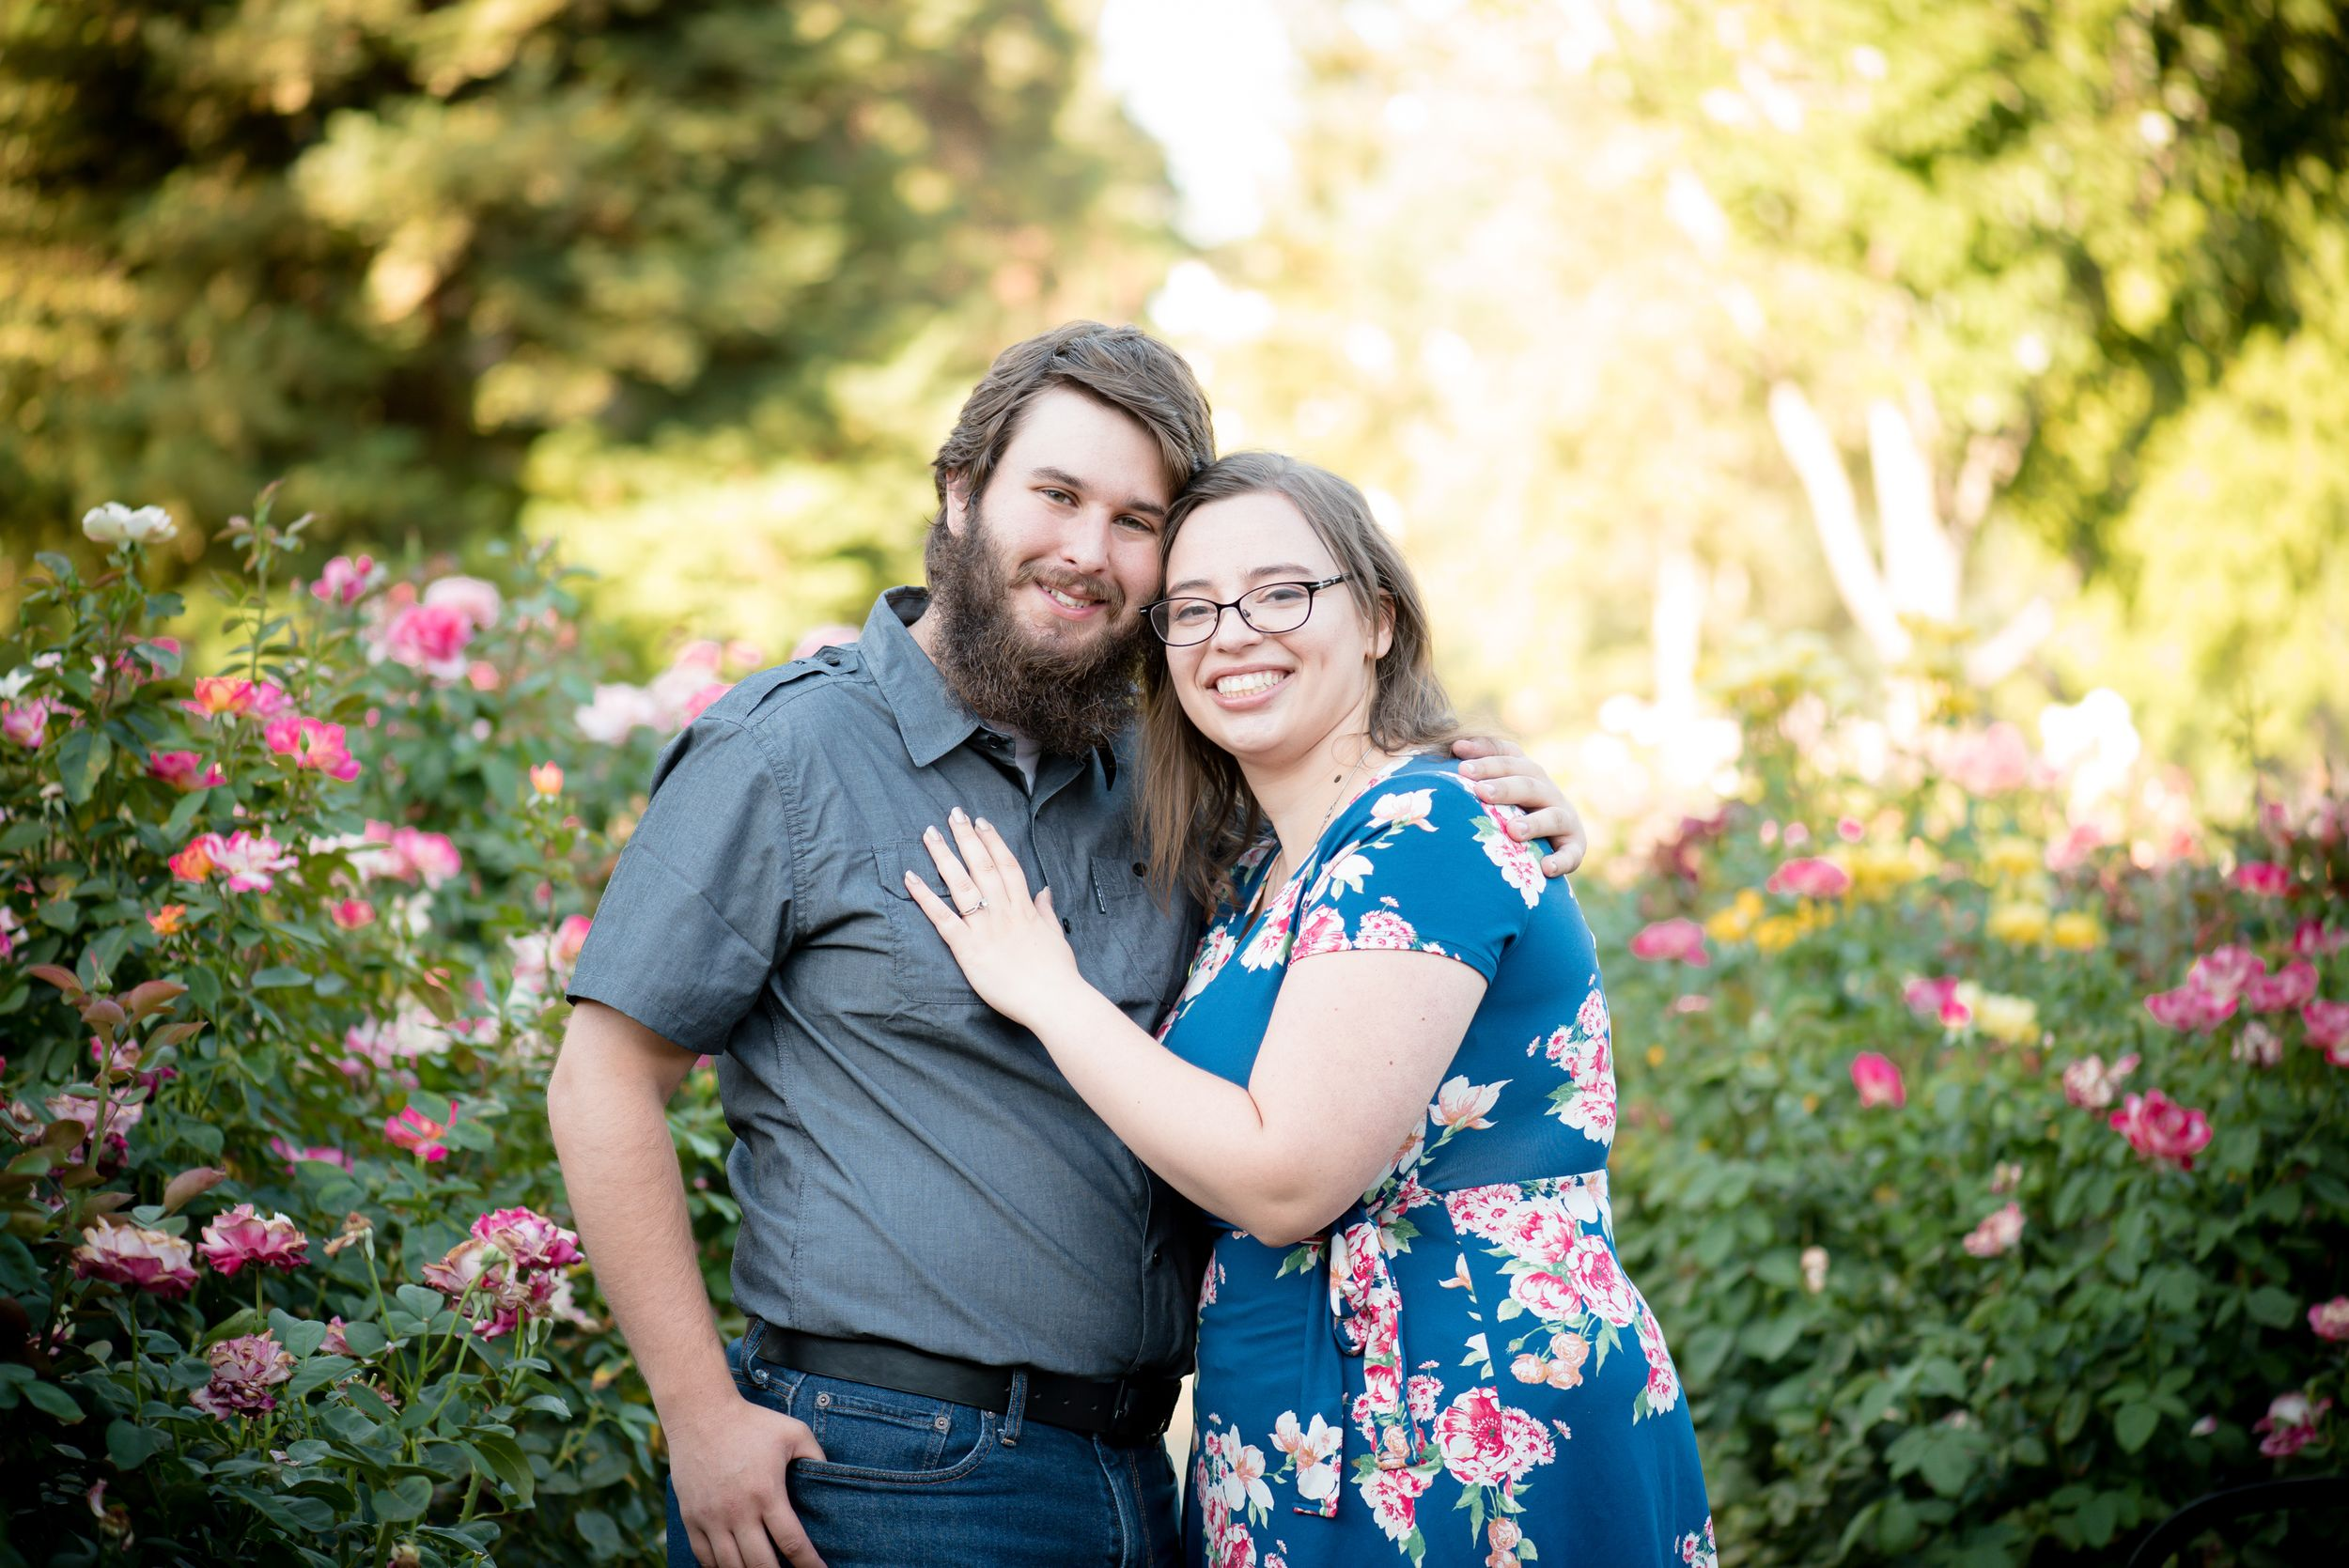 Sacramento engagement photographer - engagement session at the Capitol World Pease World Garden in Sacramento, Calif.